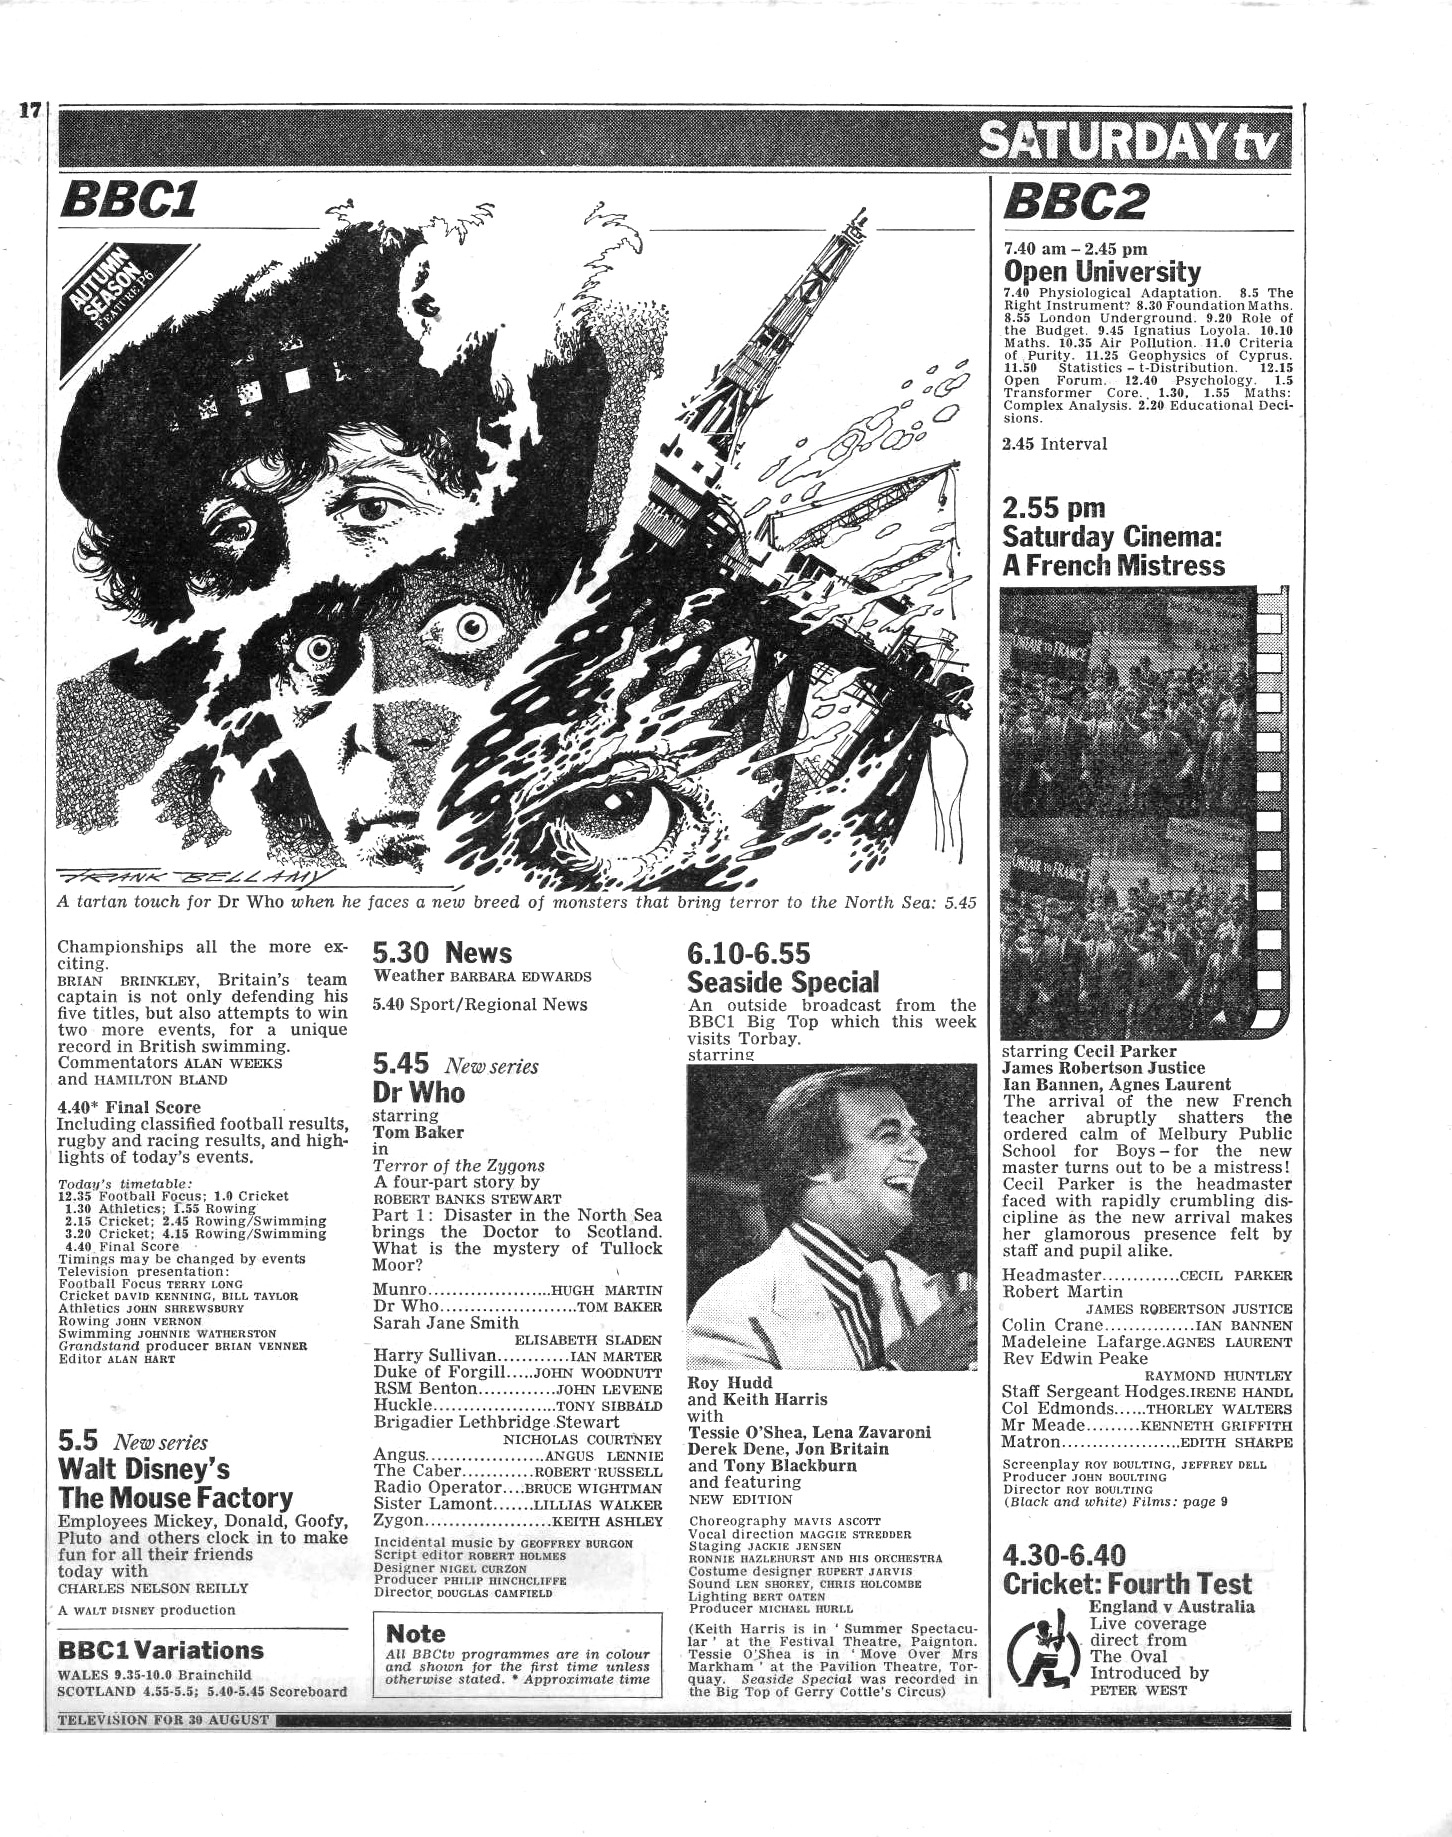 Zygons Sat TV page